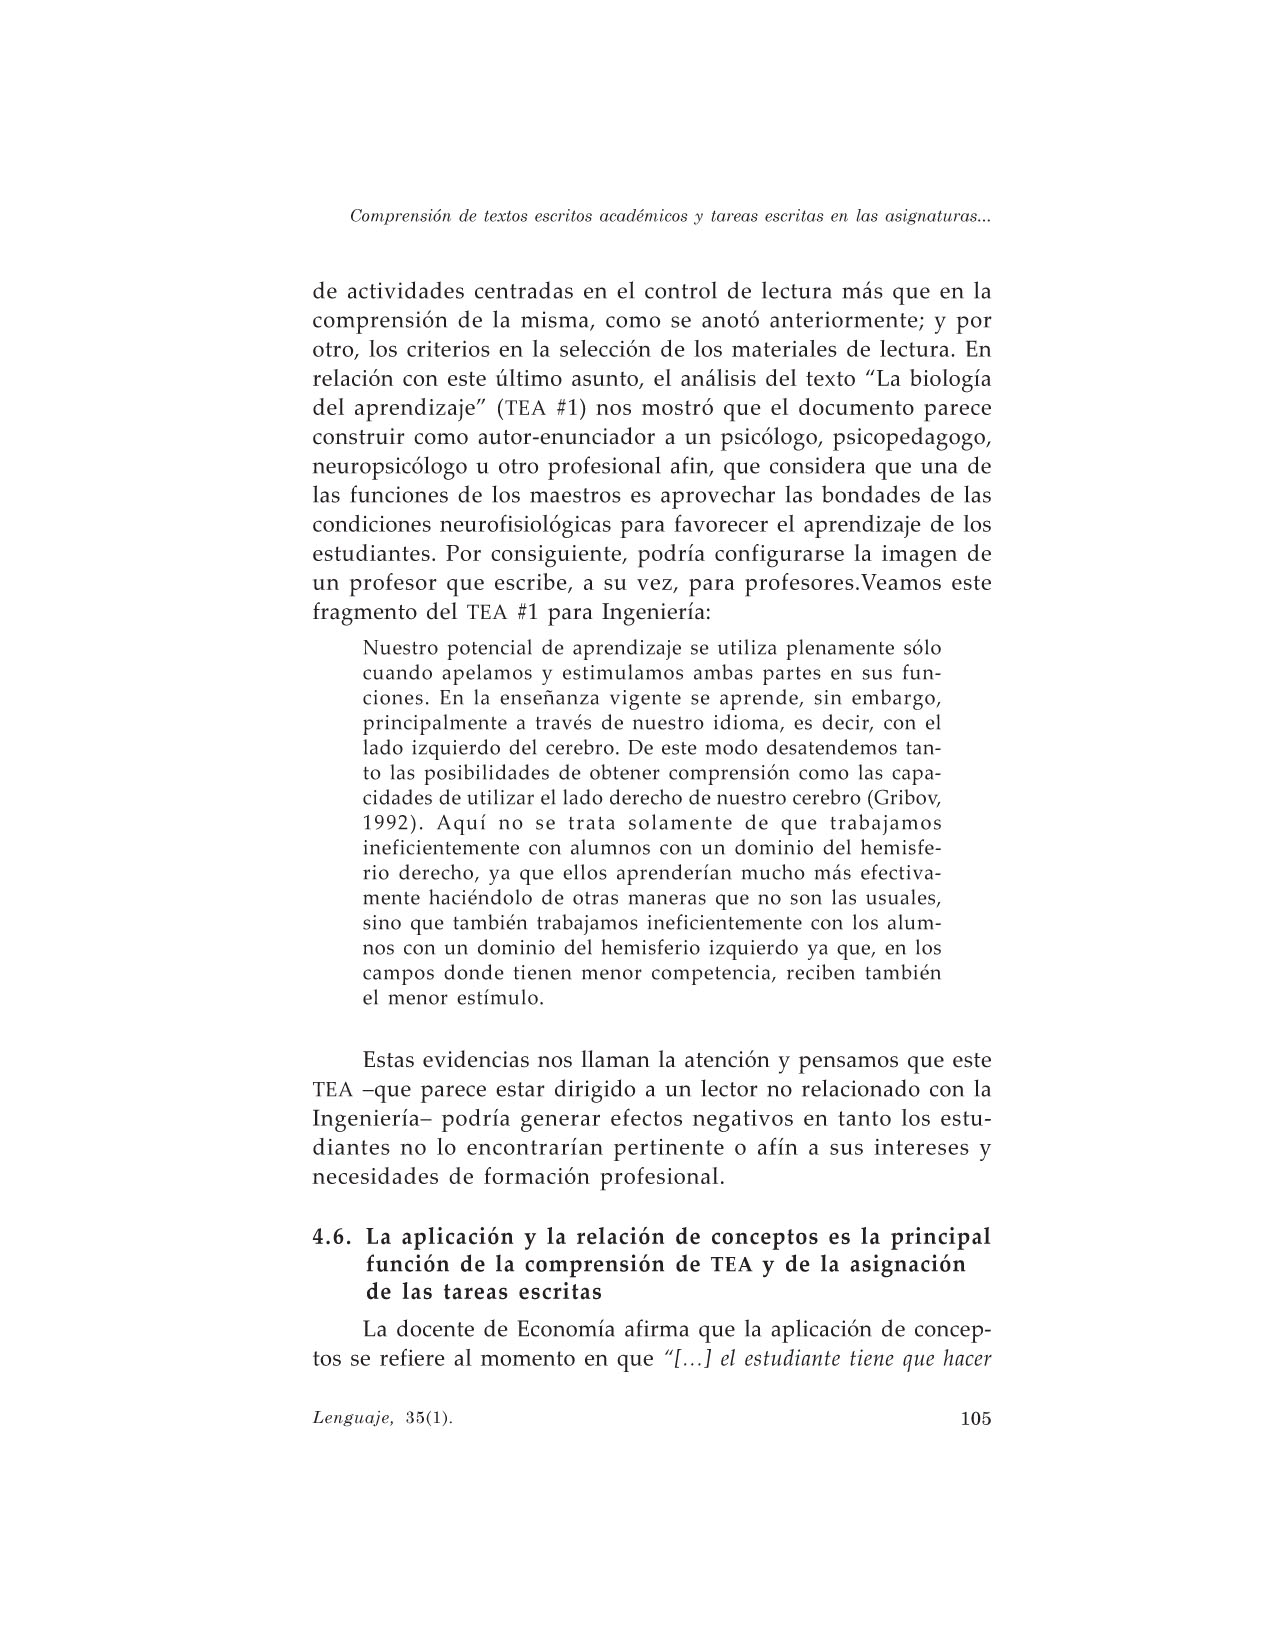 academic onefile document irreversibility analysis of variable  academic onefile document irreversibility analysis of variable viscosity channel flow convective cooling at the walls